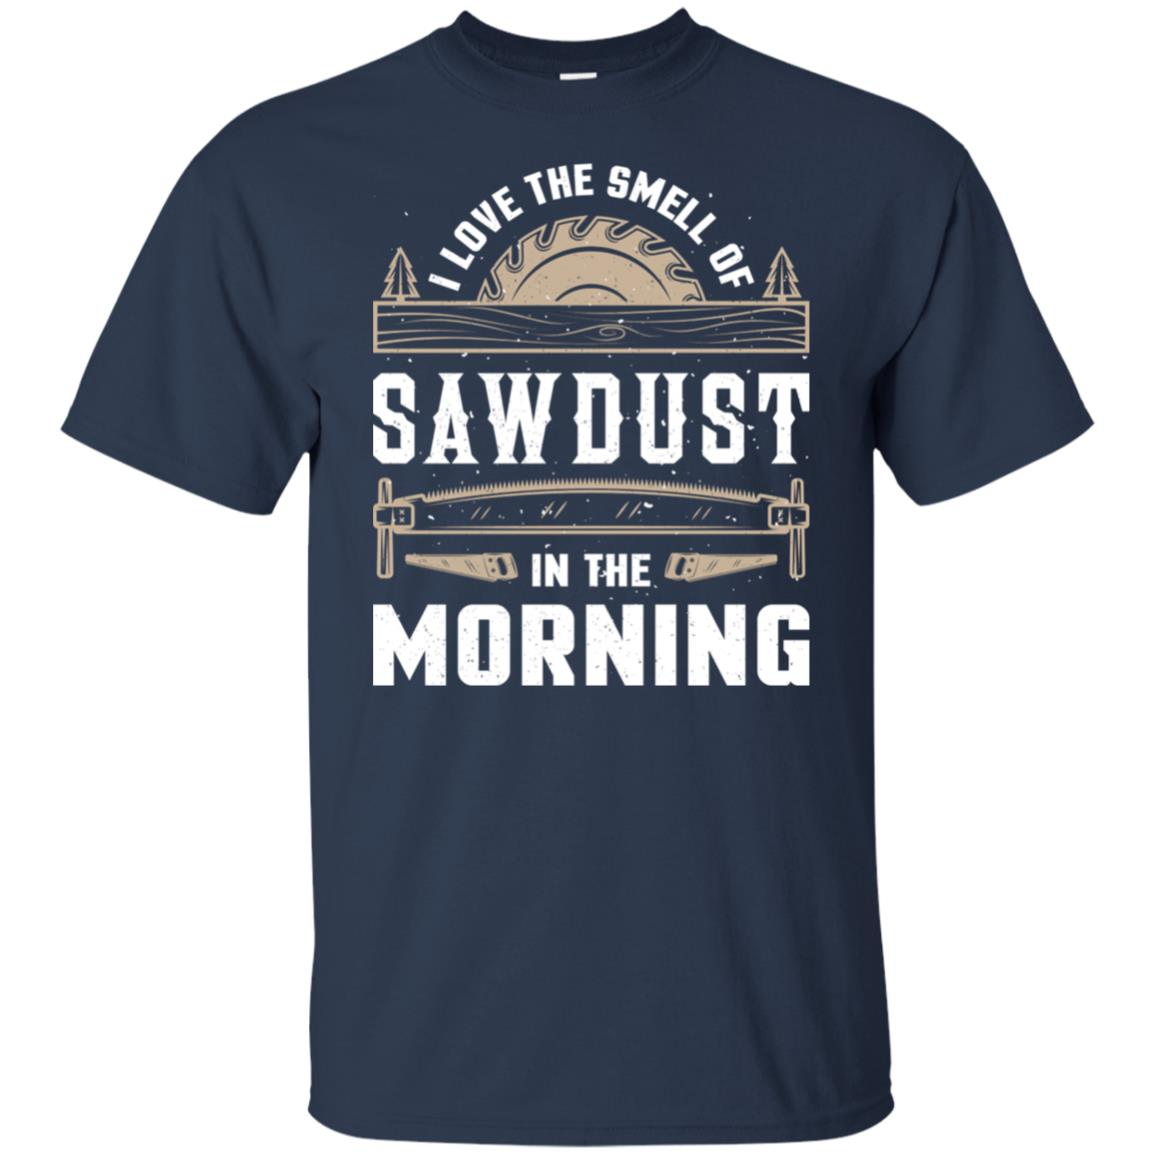 I Love the Smell Sawdust in the Morning Woodworking Unisex Short Sleeve